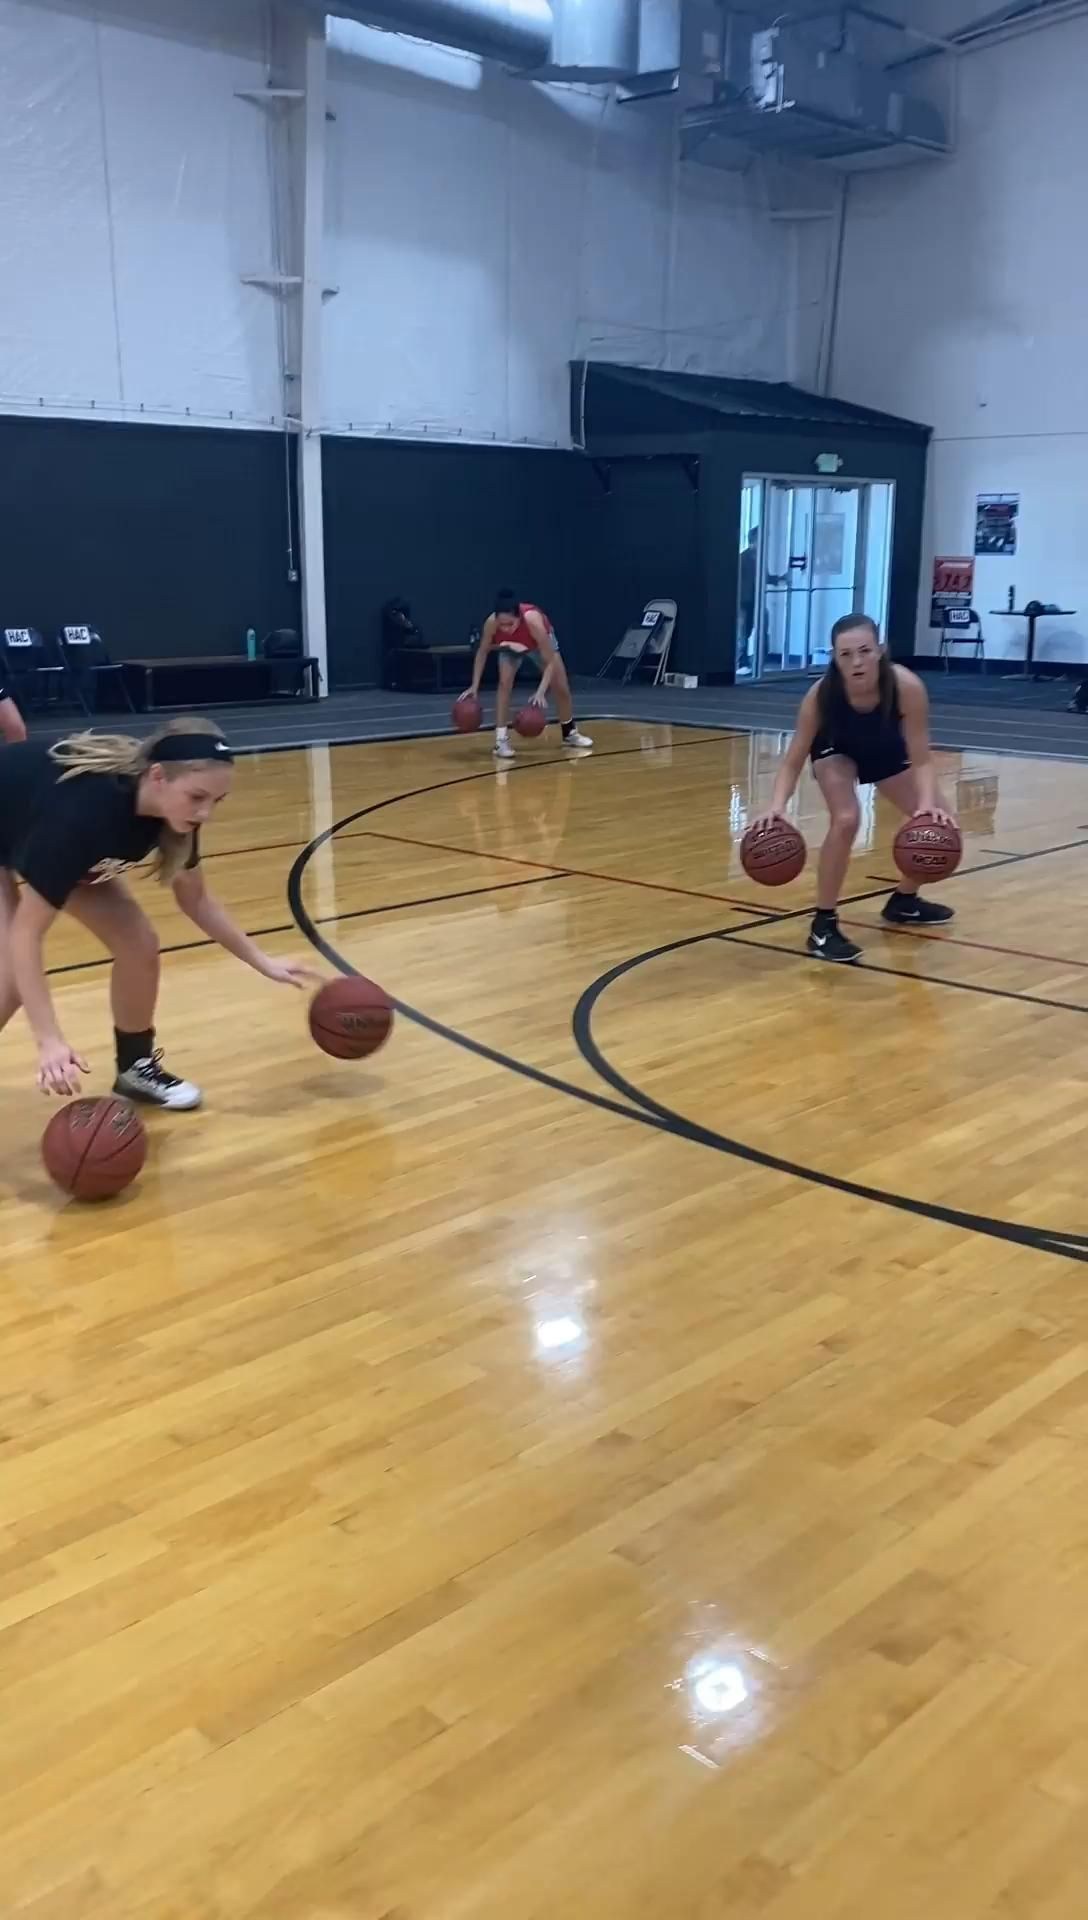 Hac Basketball Clinic 6 19 20 Video In 2020 Basketball Athletic Clubs Clinic